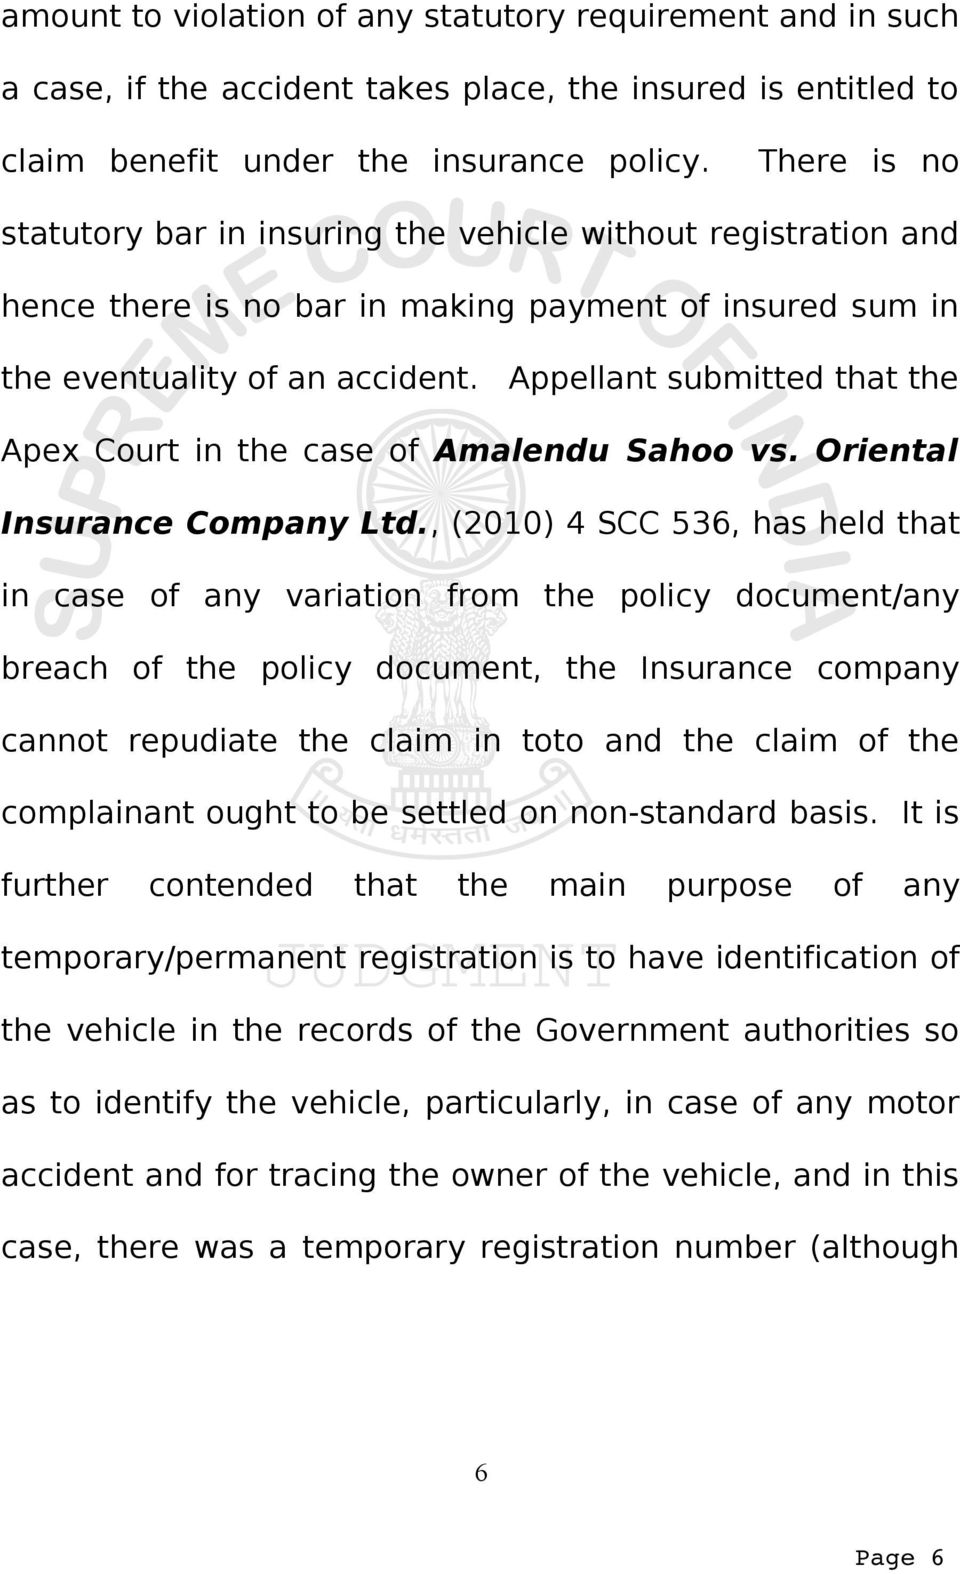 Appellant submitted that the Apex Court in the case of Amalendu Sahoo vs. Oriental Insurance Company Ltd.